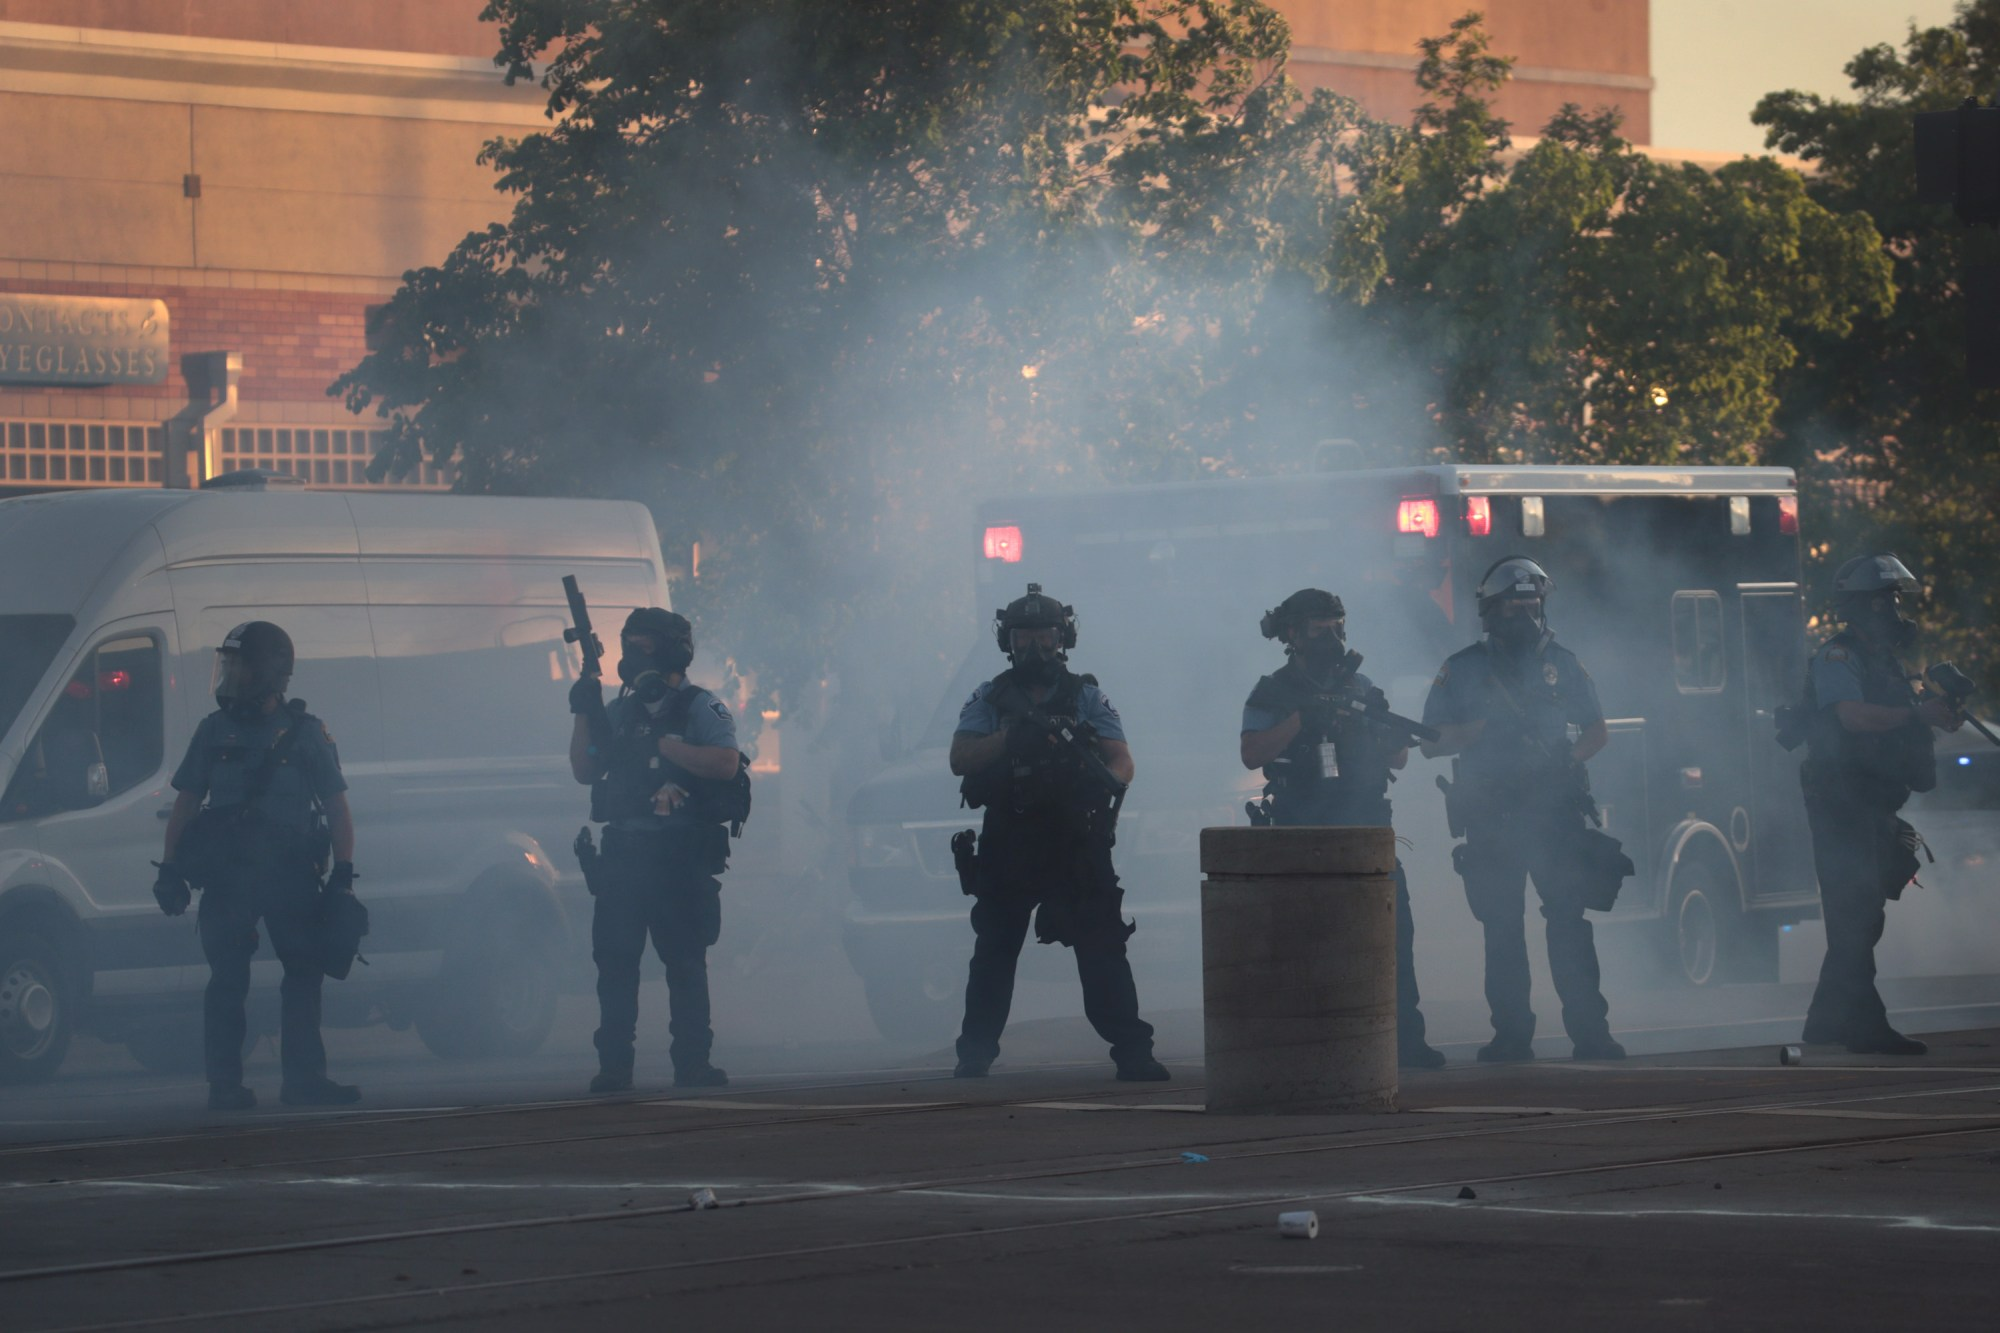 Police officers keep watch in a haze of tear gas during a protest on May 28, 2020 in St. Paul, Minnesota. (Scott Olson/Getty Images)